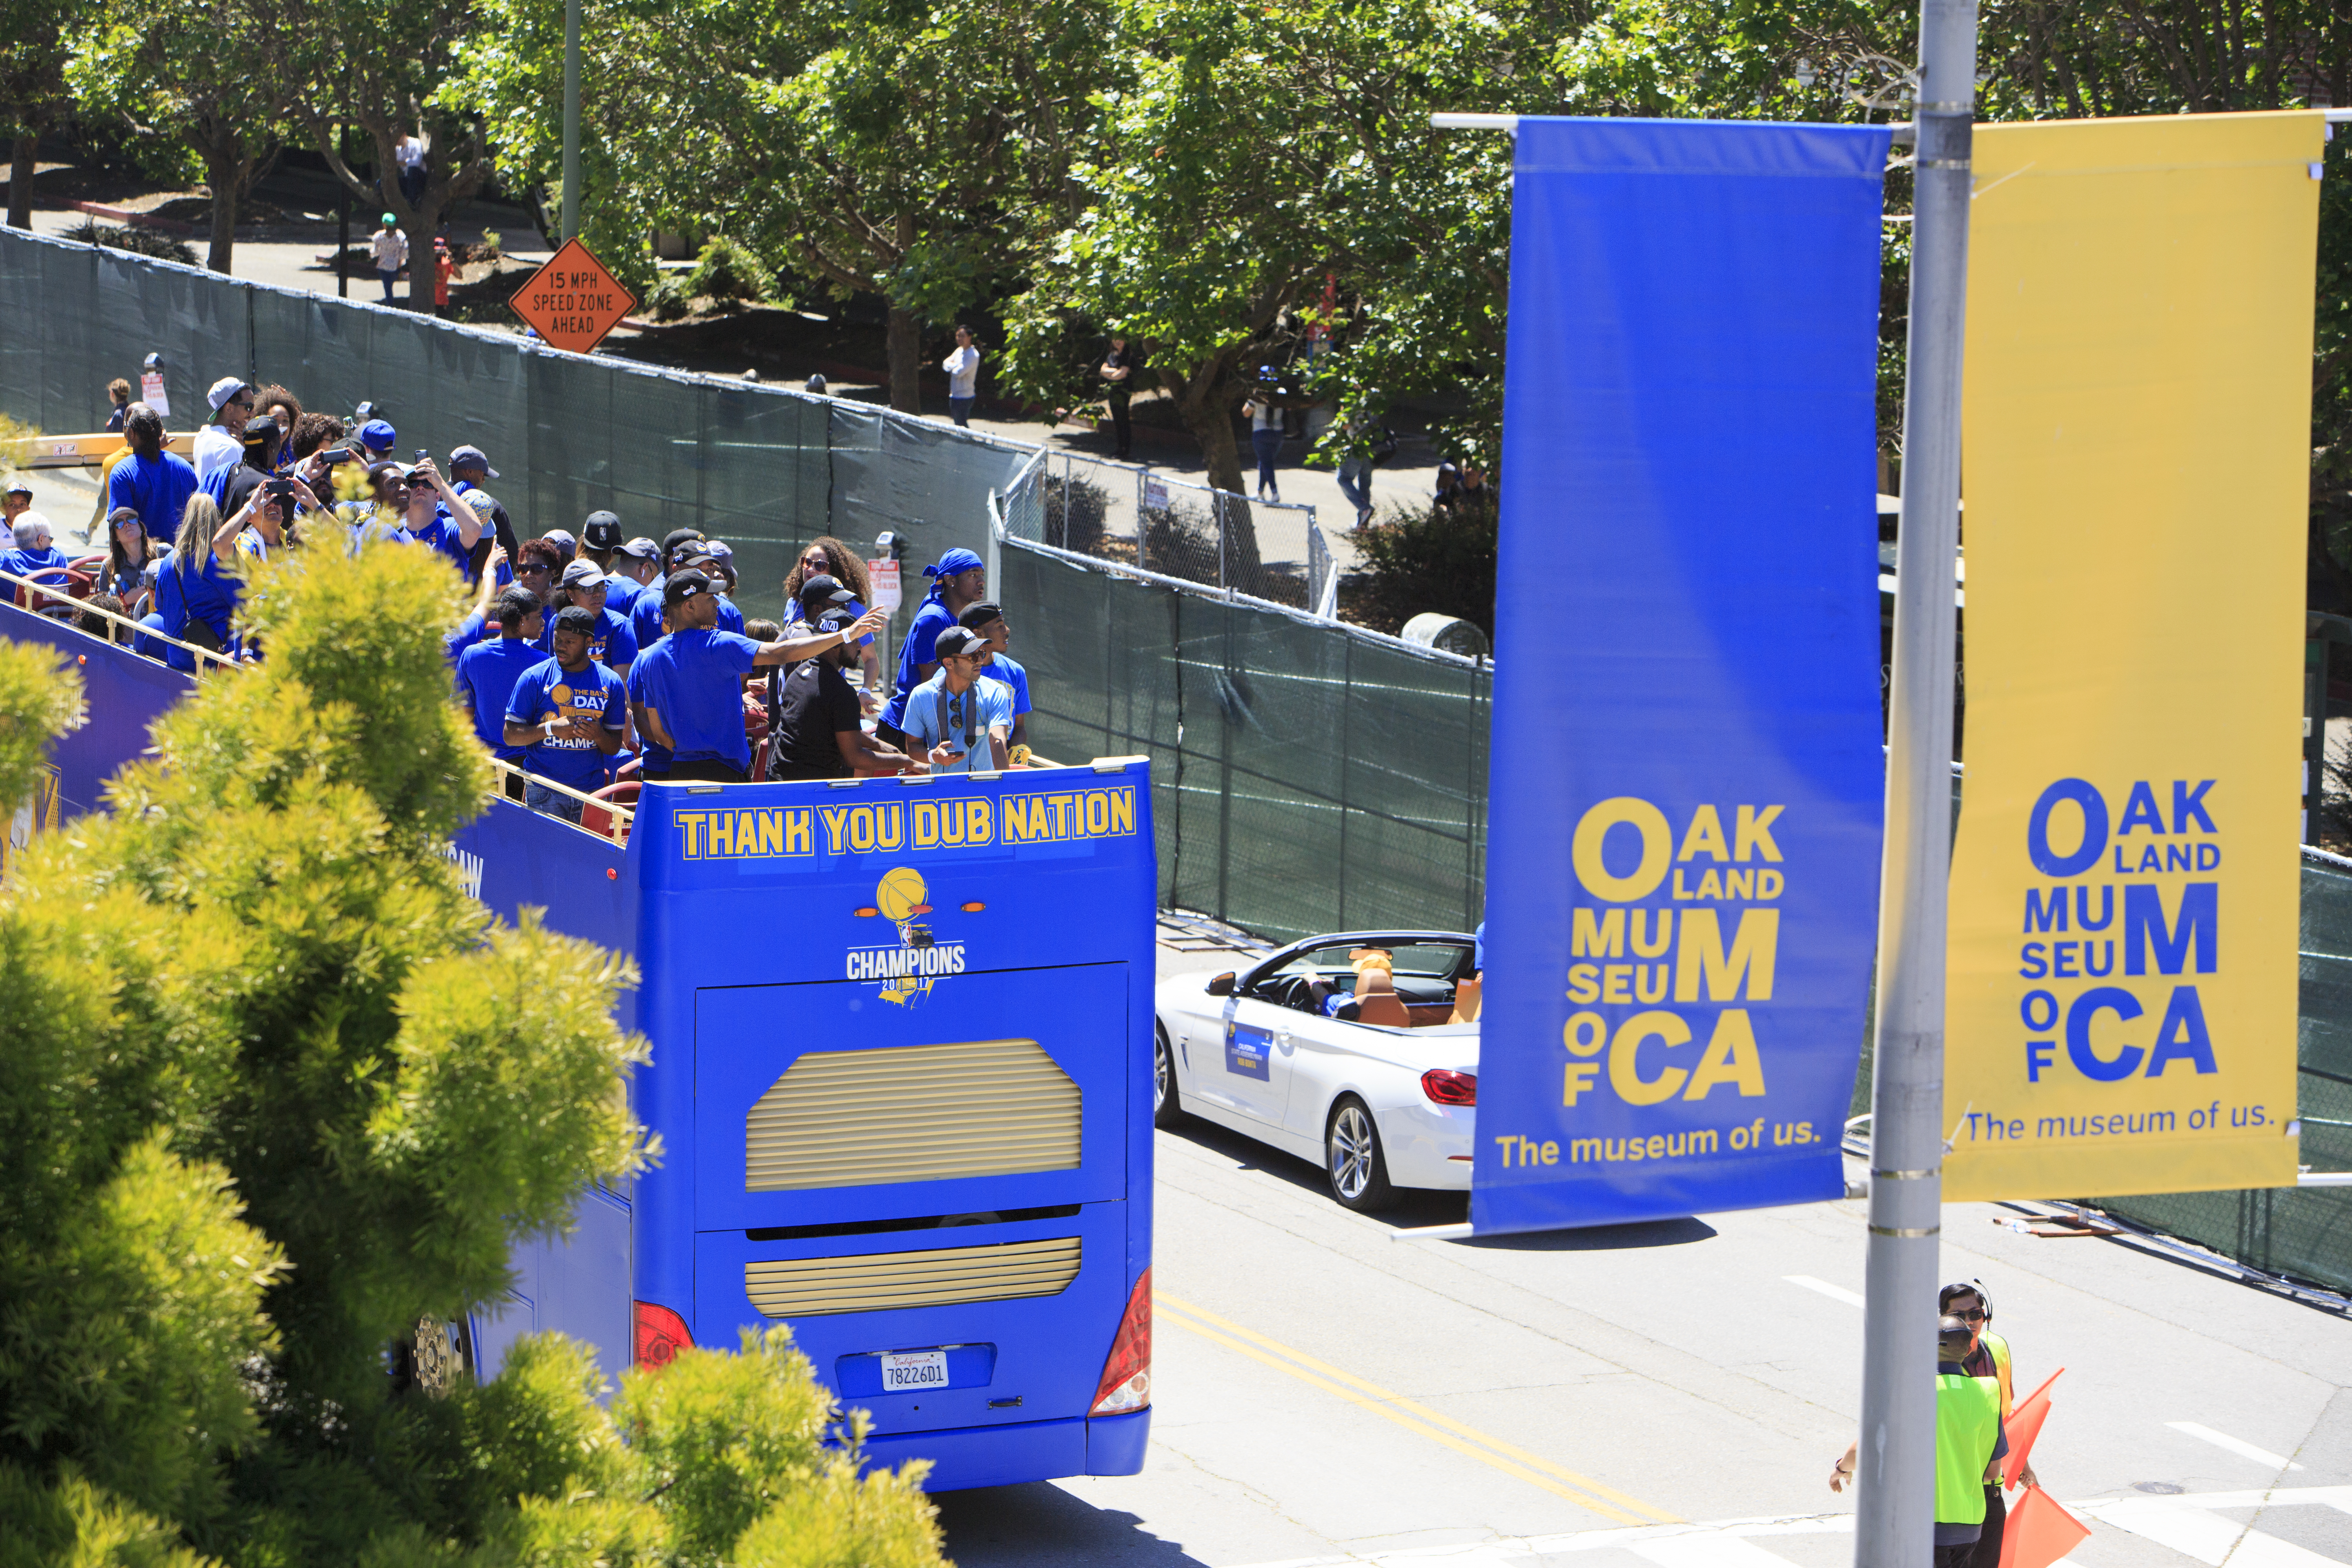 View of the Warriors Championship Parade in downtown Oakland. Photo: Oakland Museum of California